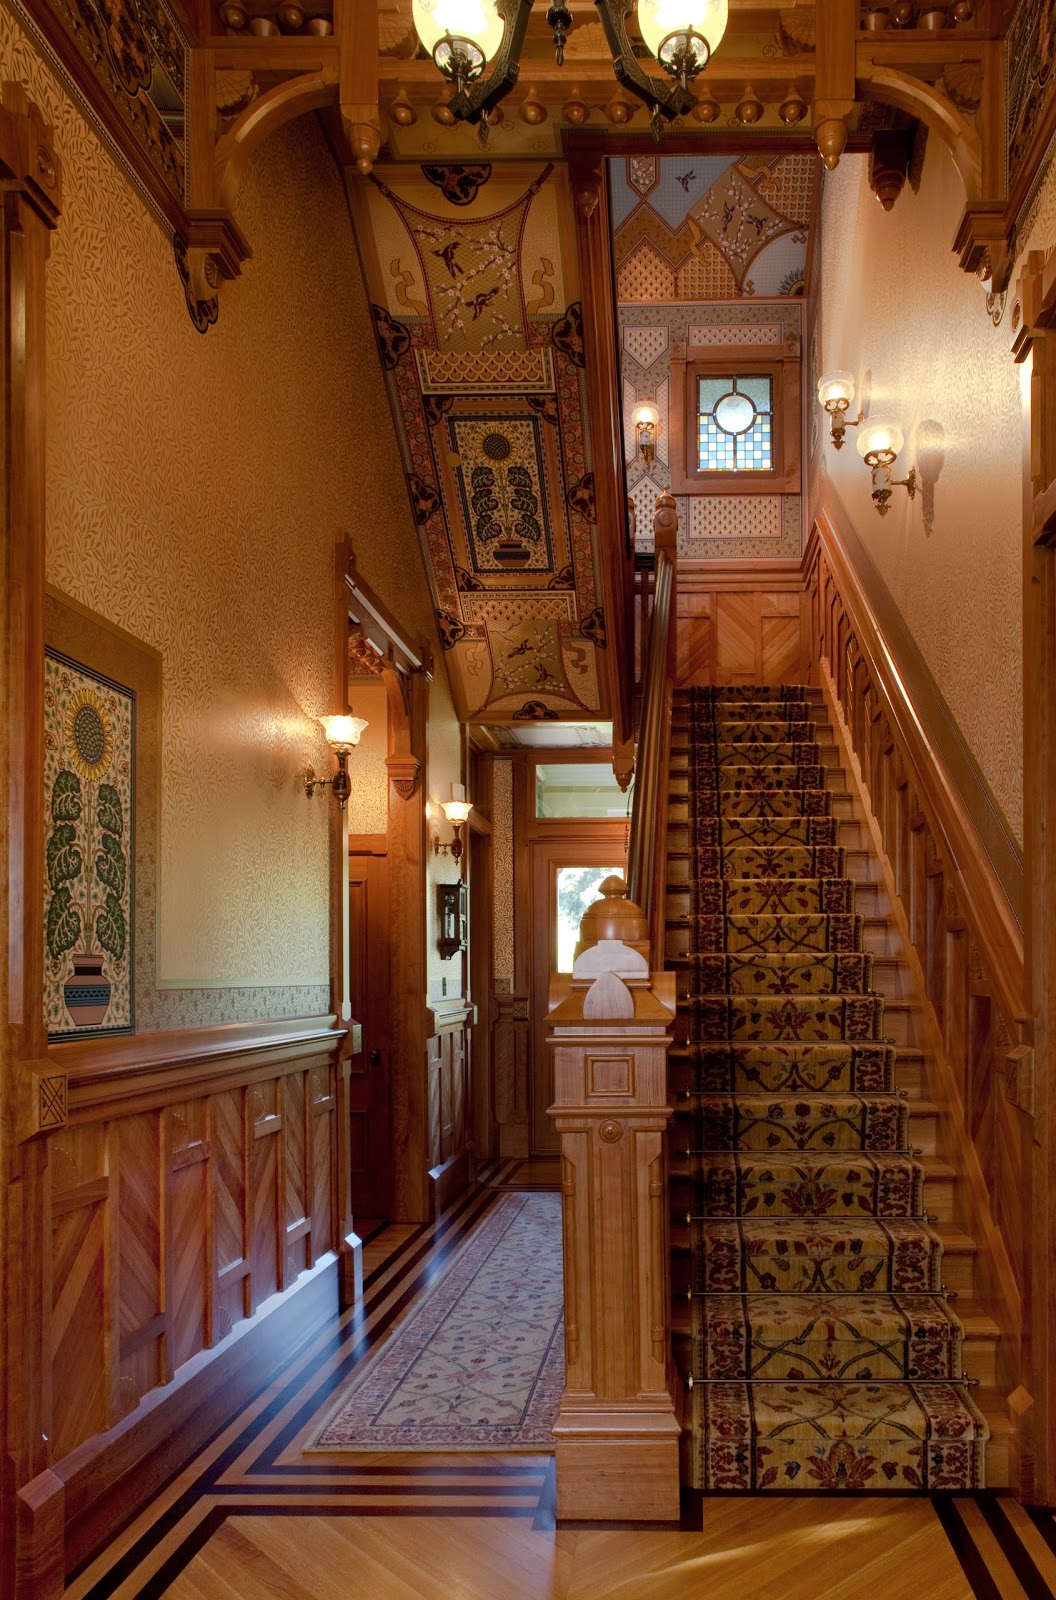 Artistic License News Mcdonald Mansion The Formal Interiors At Mableton